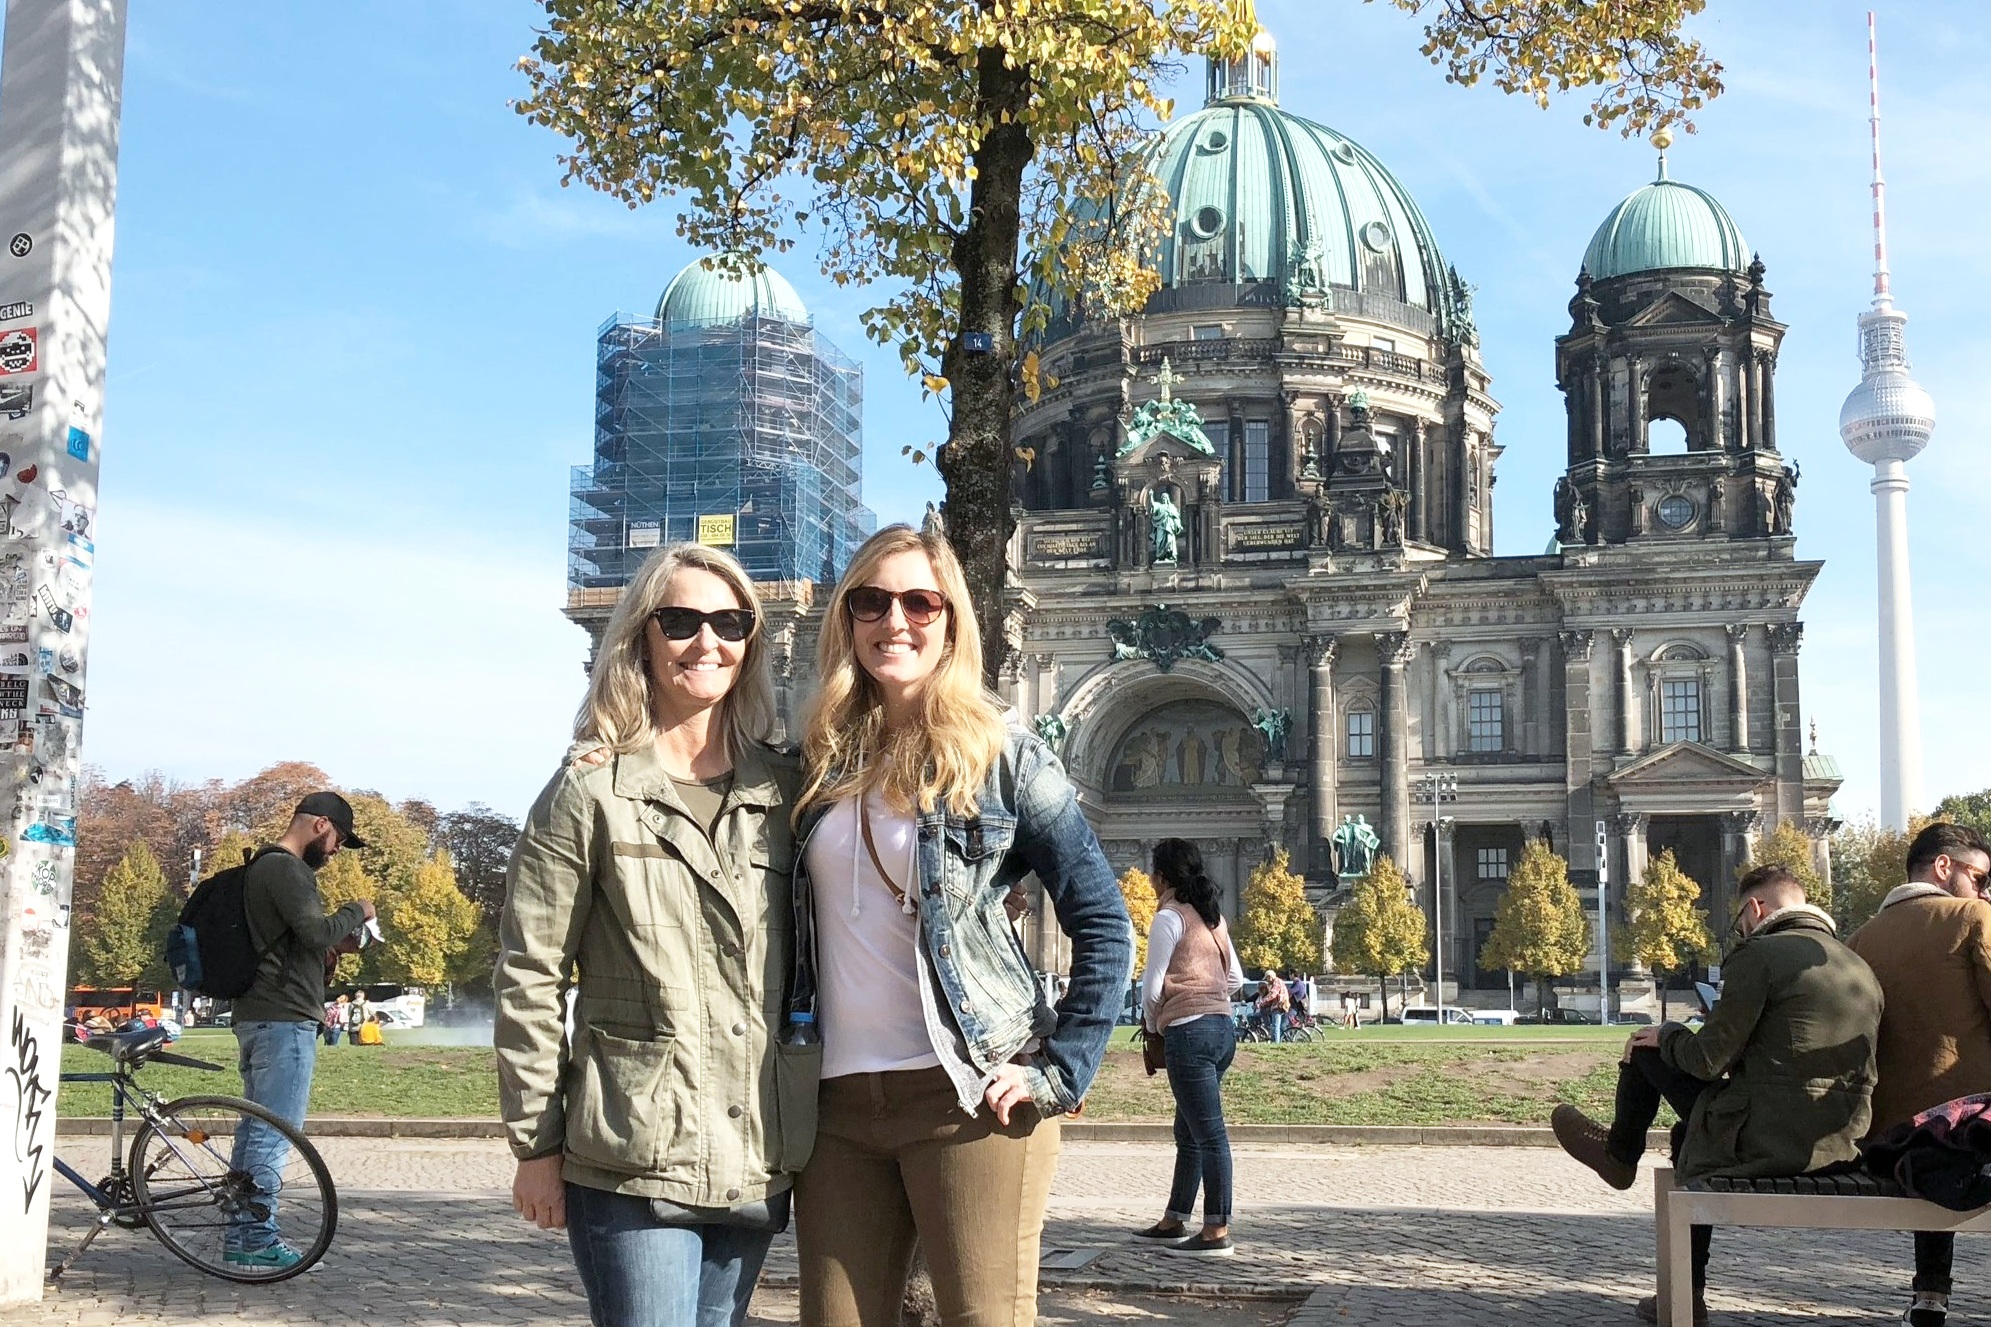 Lauren + Cherish in Germany